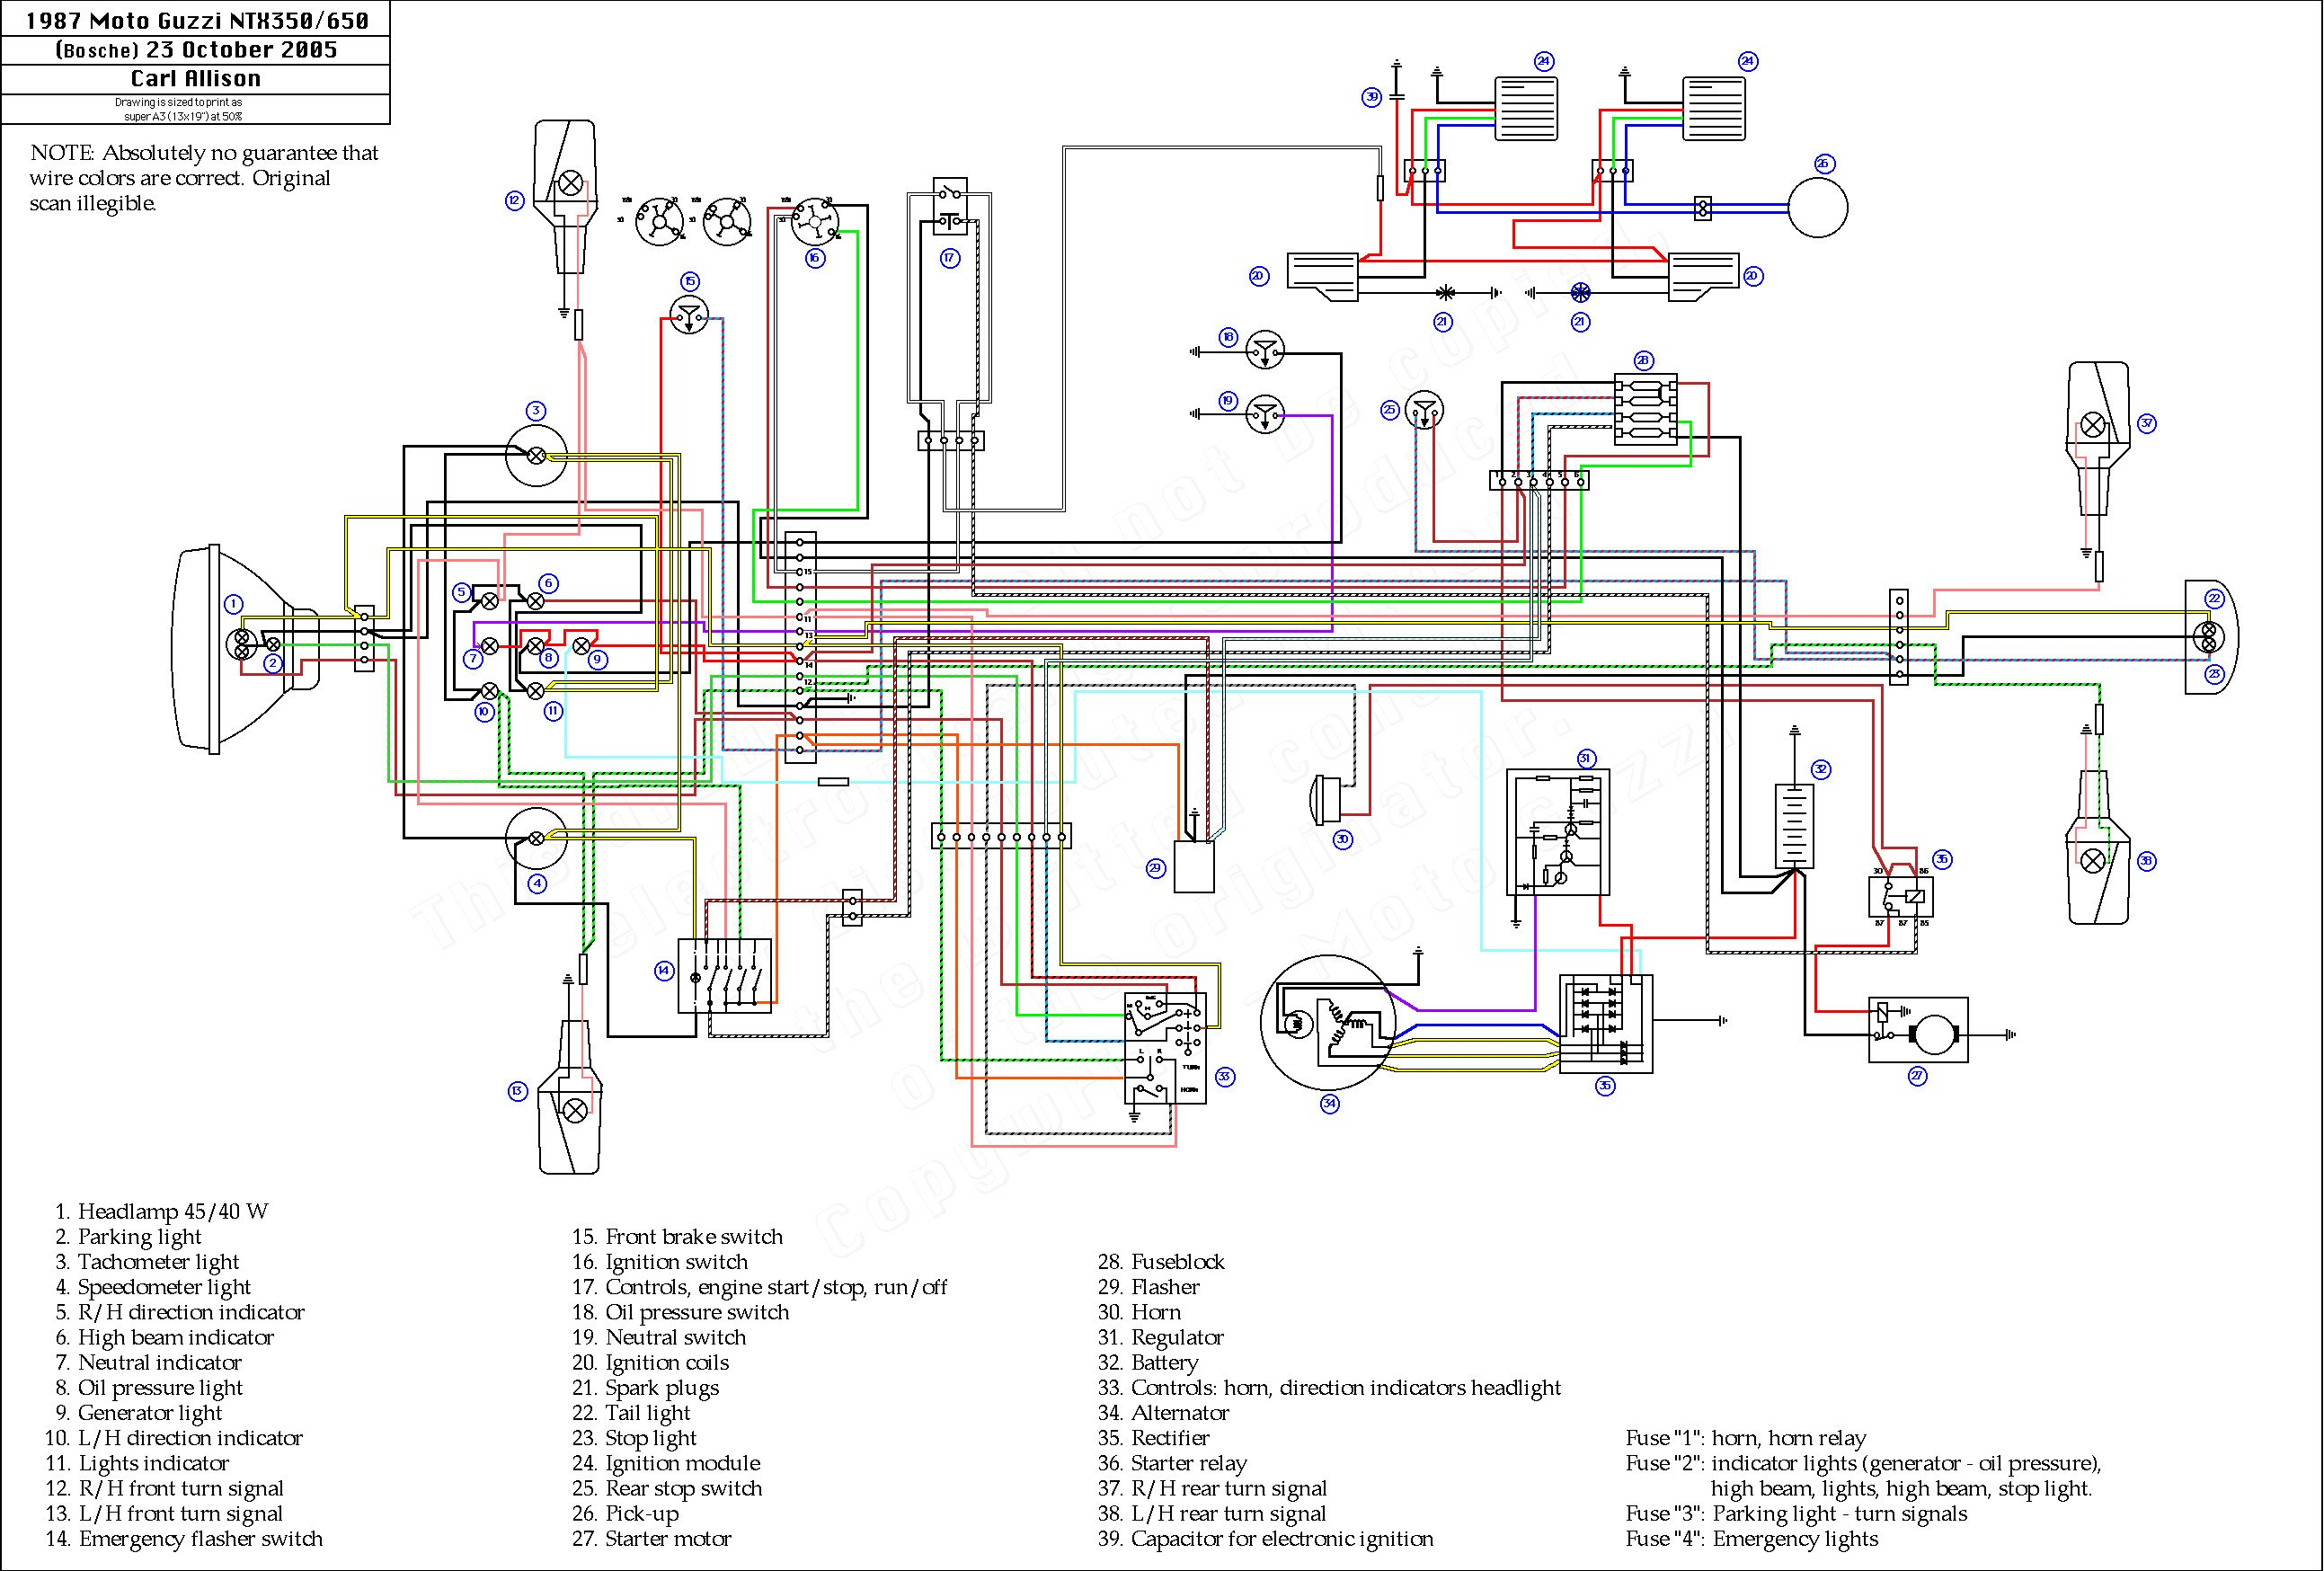 Yamaha 4 3 Wiring Diagram - Wiring Diagram Details on omc 4.3 oil cooler, omc cobra 4.3 electrical wiring, omc 4.3 hose, omc 4.3 engine, omc 4.3 manual, omc cobra 4.3 battery connections,